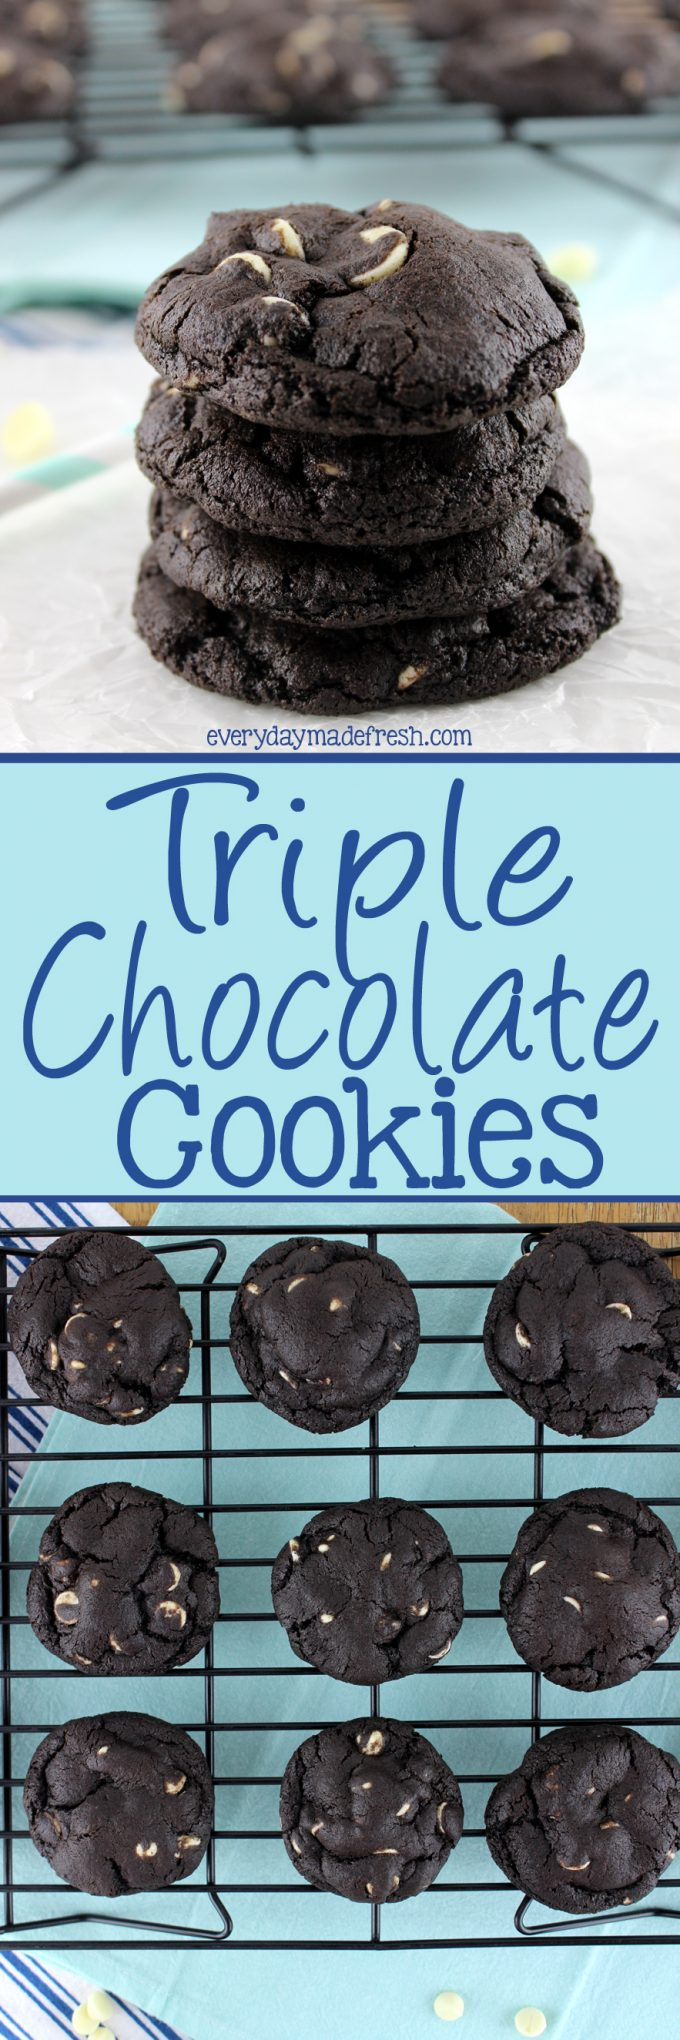 These Triple Chocolate Cookies aren't playing around. They are loaded with serious chocolate flavors, from dark chocolate, milk chocolate, and white chocolate!   EverydayMadeFresh.com